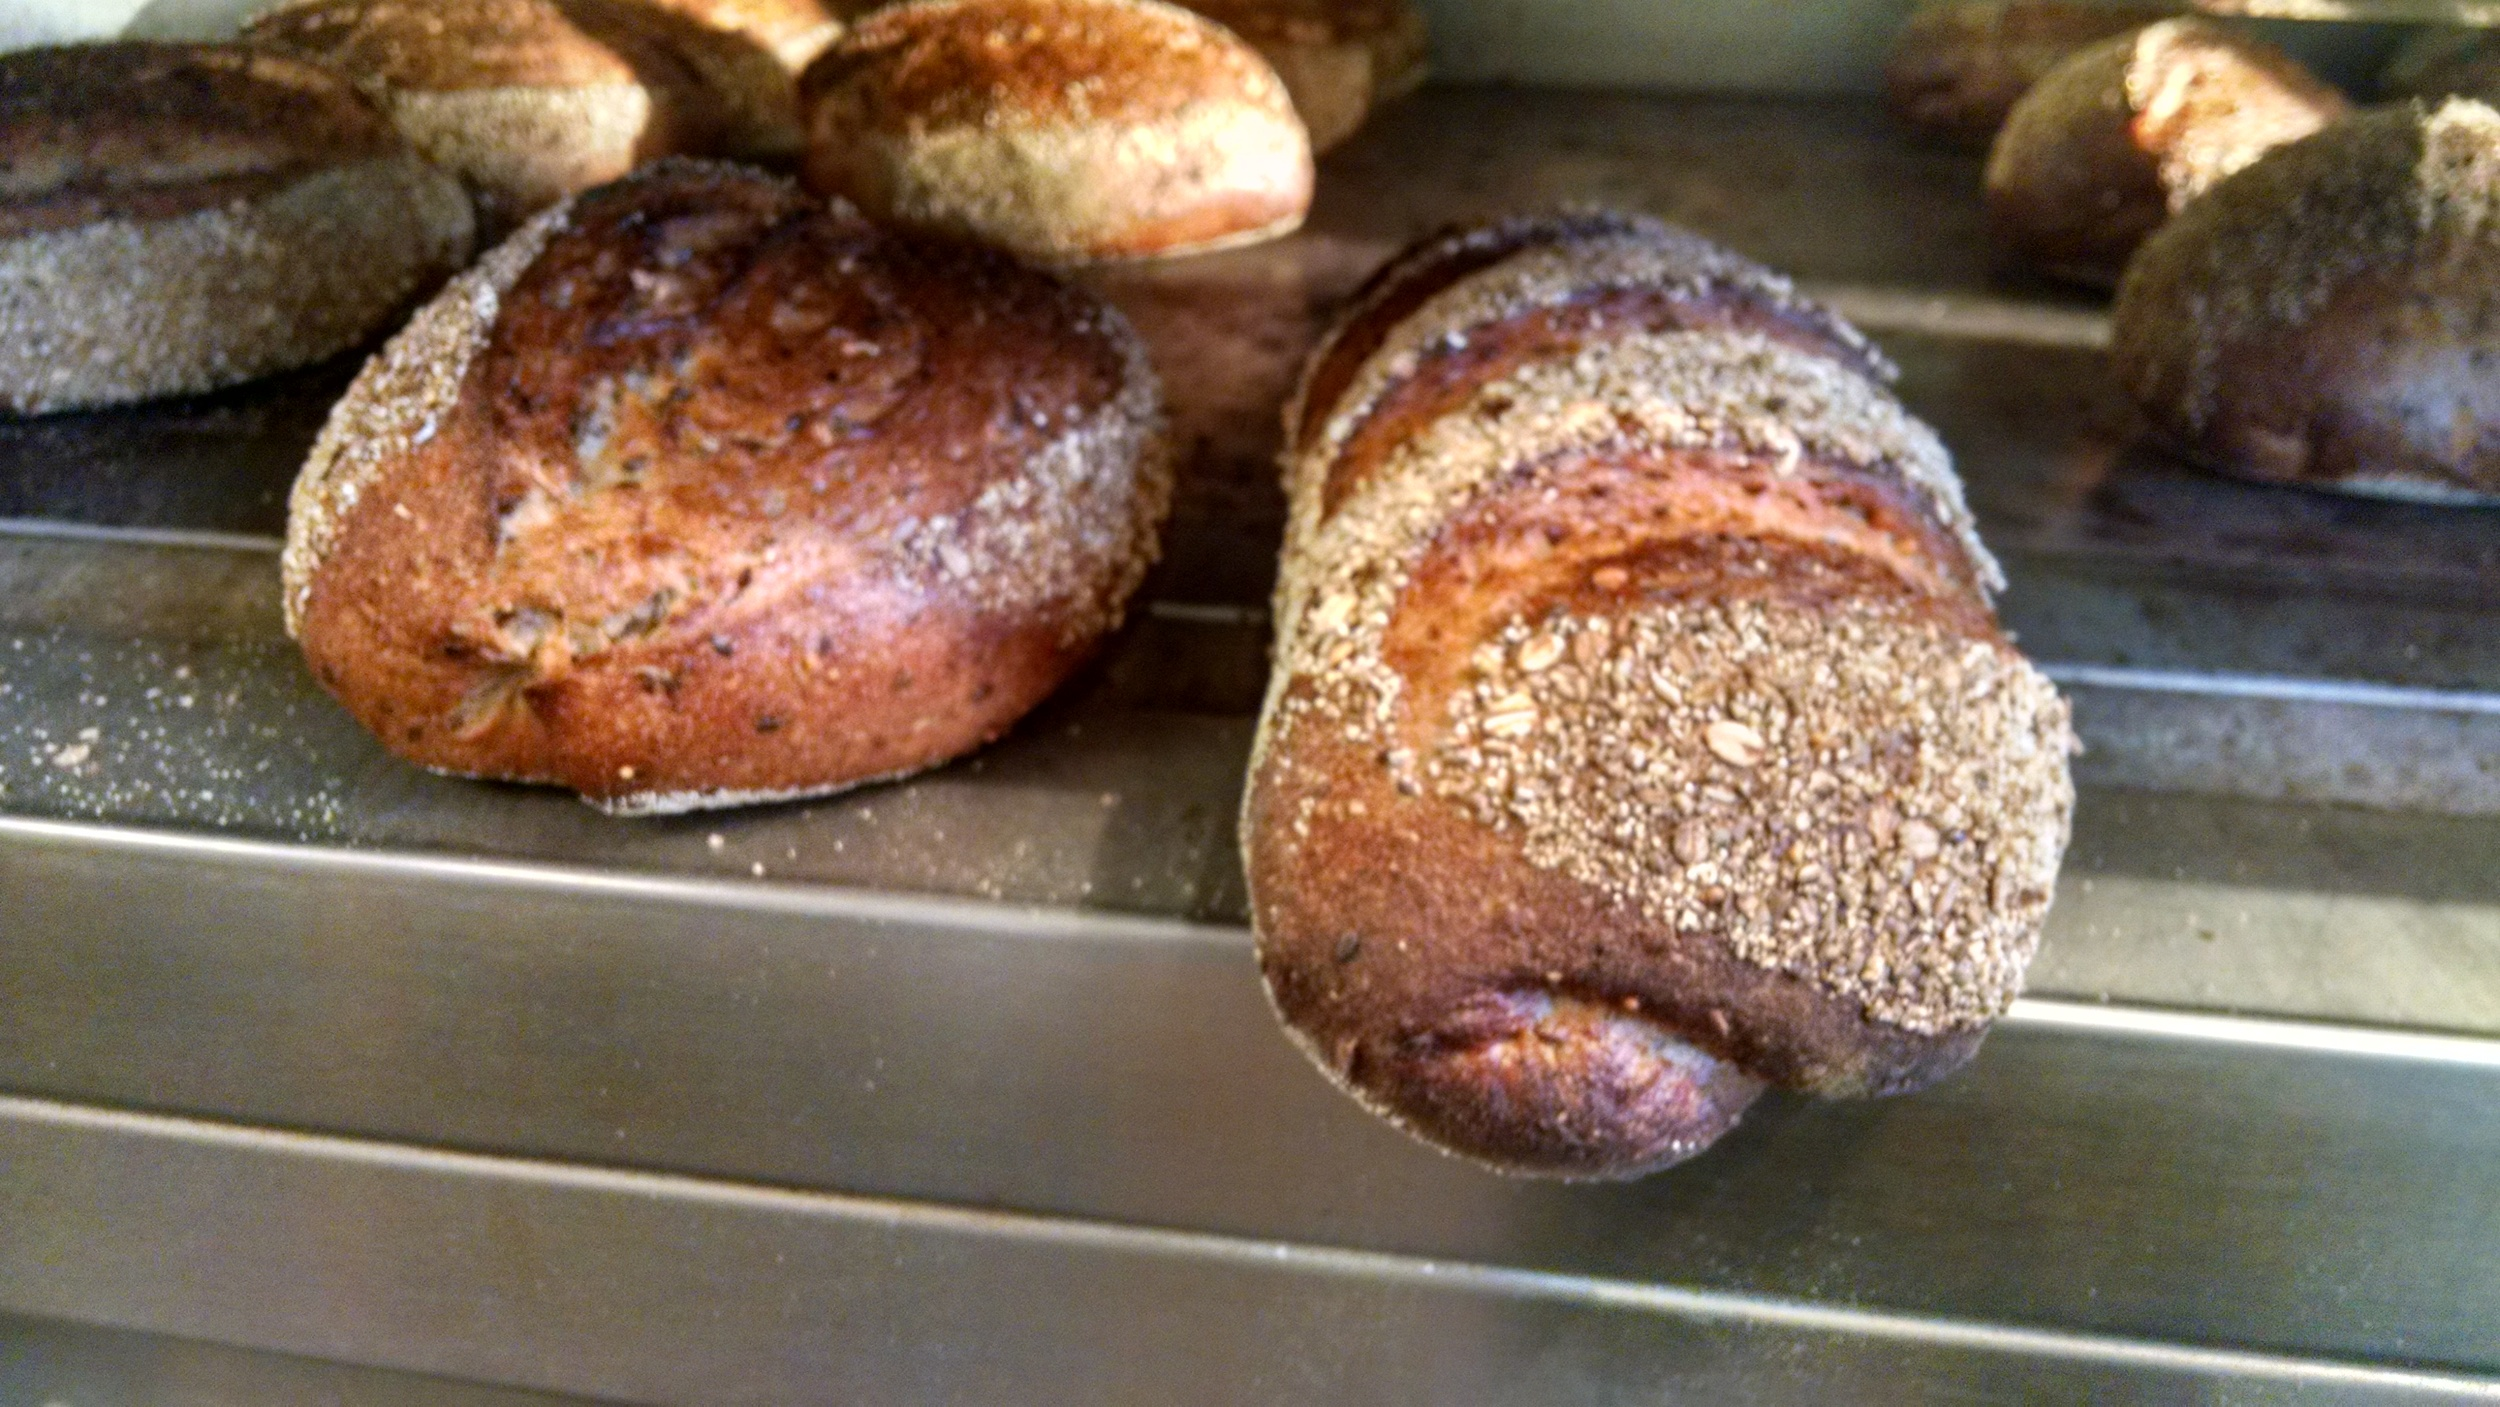 Some of the artistanal breads made at the Walla Walla Bread Company (photo courtesy of http://www.w2breadco.com/#home)